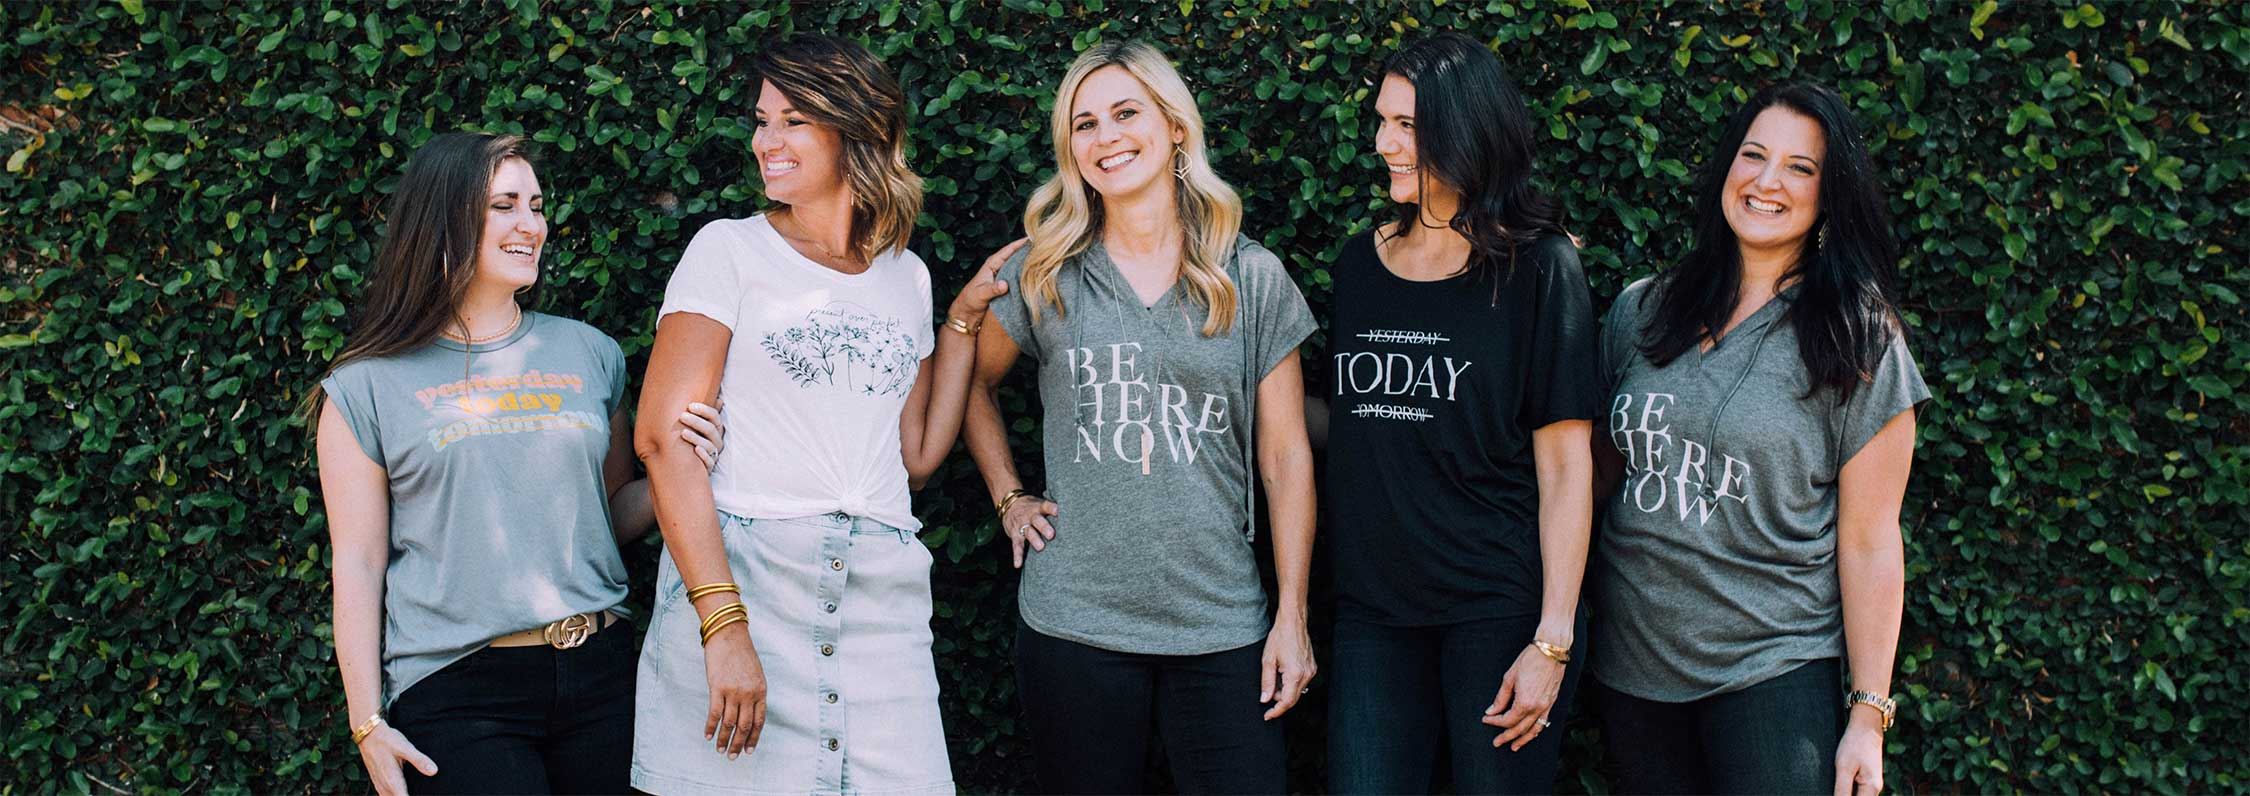 Arise Women's Conference 2019 Shirts